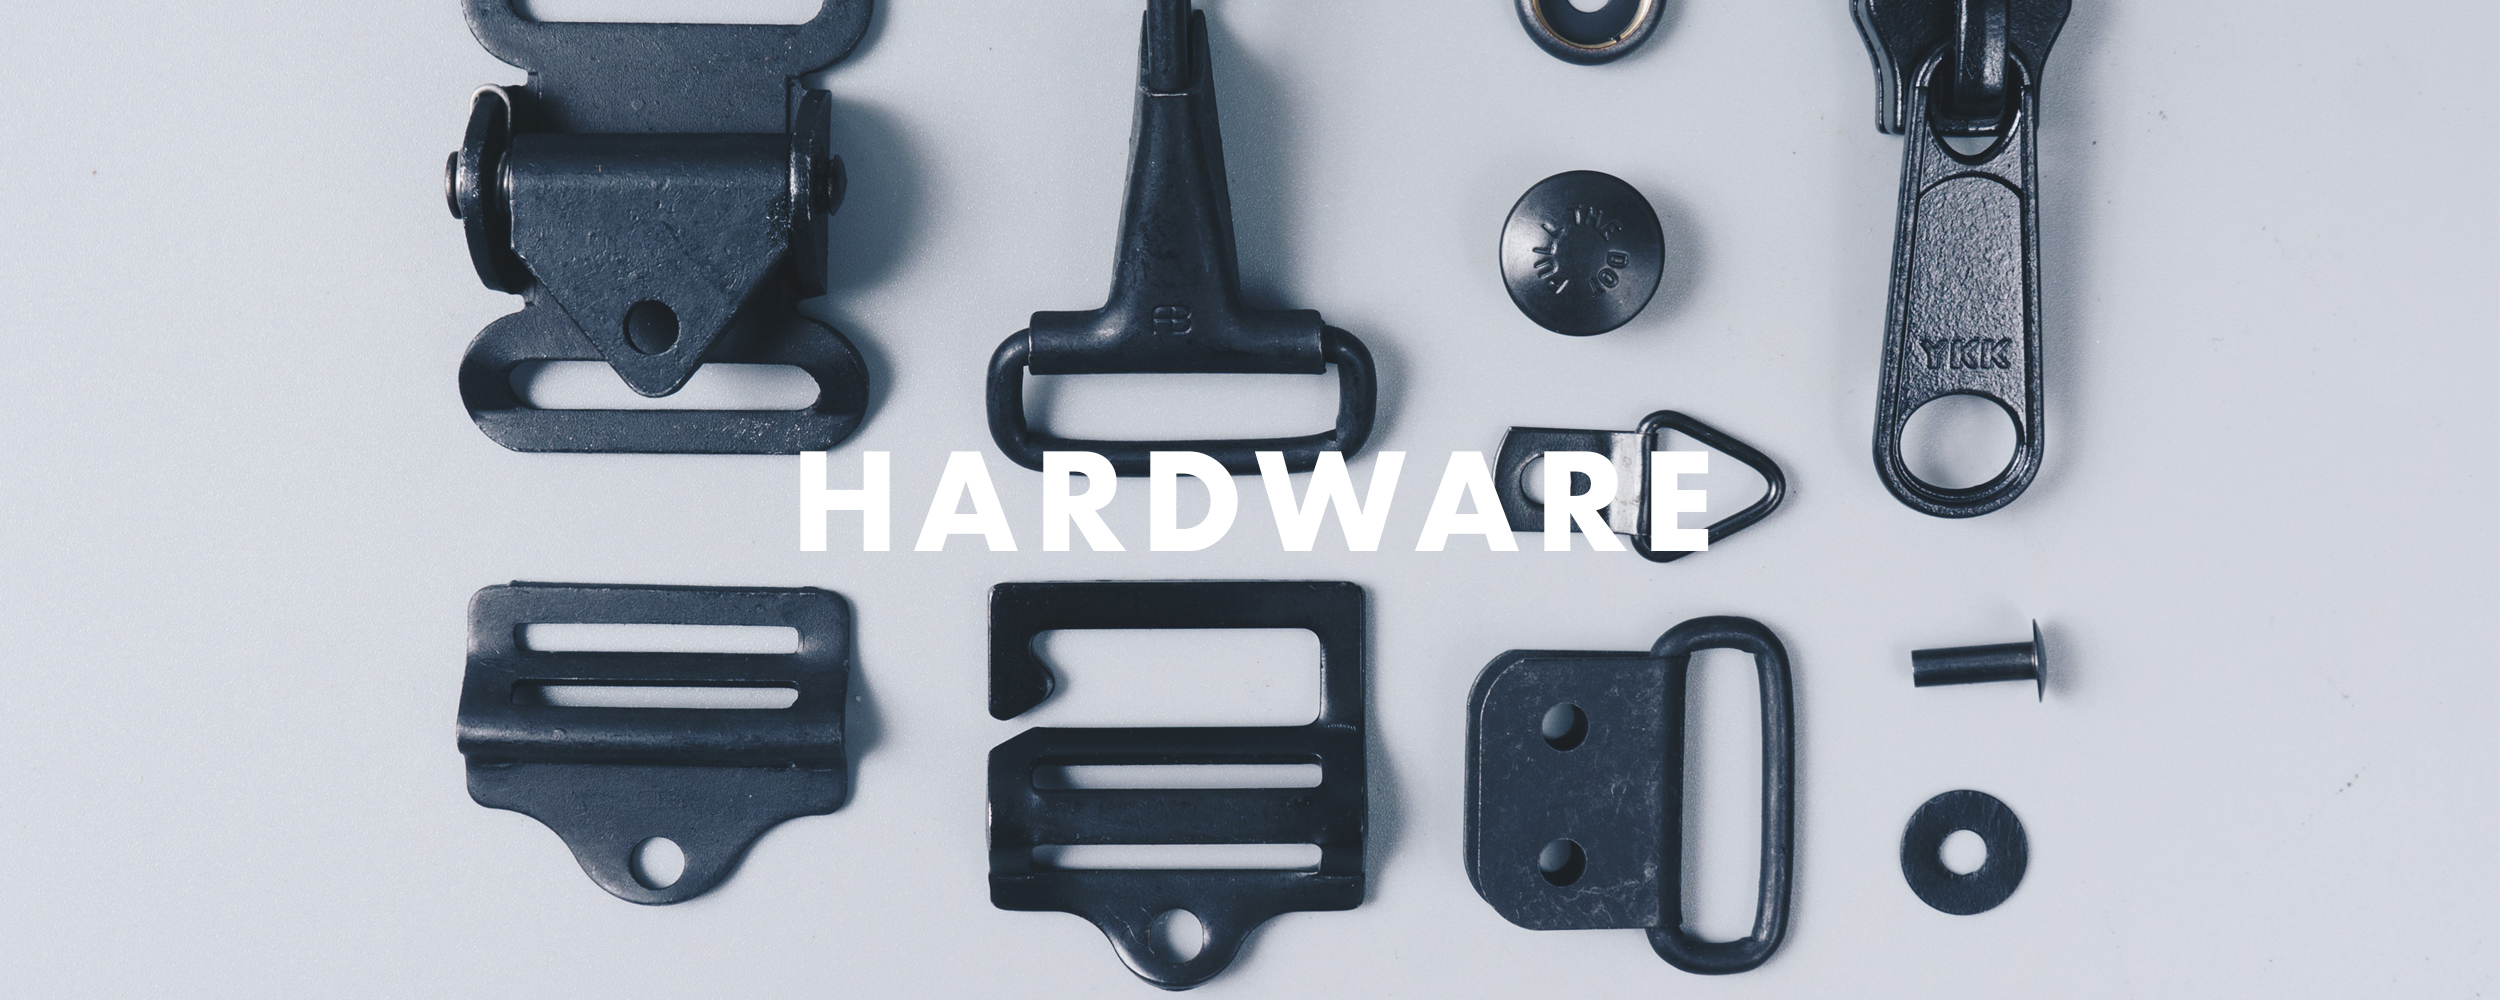 None of that plastic crap. - Quality hardware is the thing that marries form and function in any reliable product. We've tirelessly tested many different types of snaps, rivets, zippers, and buckles in order to find the hardware that'll withstand a lifetime of constant use and abuse. Most of the hardware bits we've sourced are made from corrosion resistant metals and are military-spec certified. This ensures functional reliability throughout the lifetime of the product and overall, is much more durable than fasteners made from plastic.